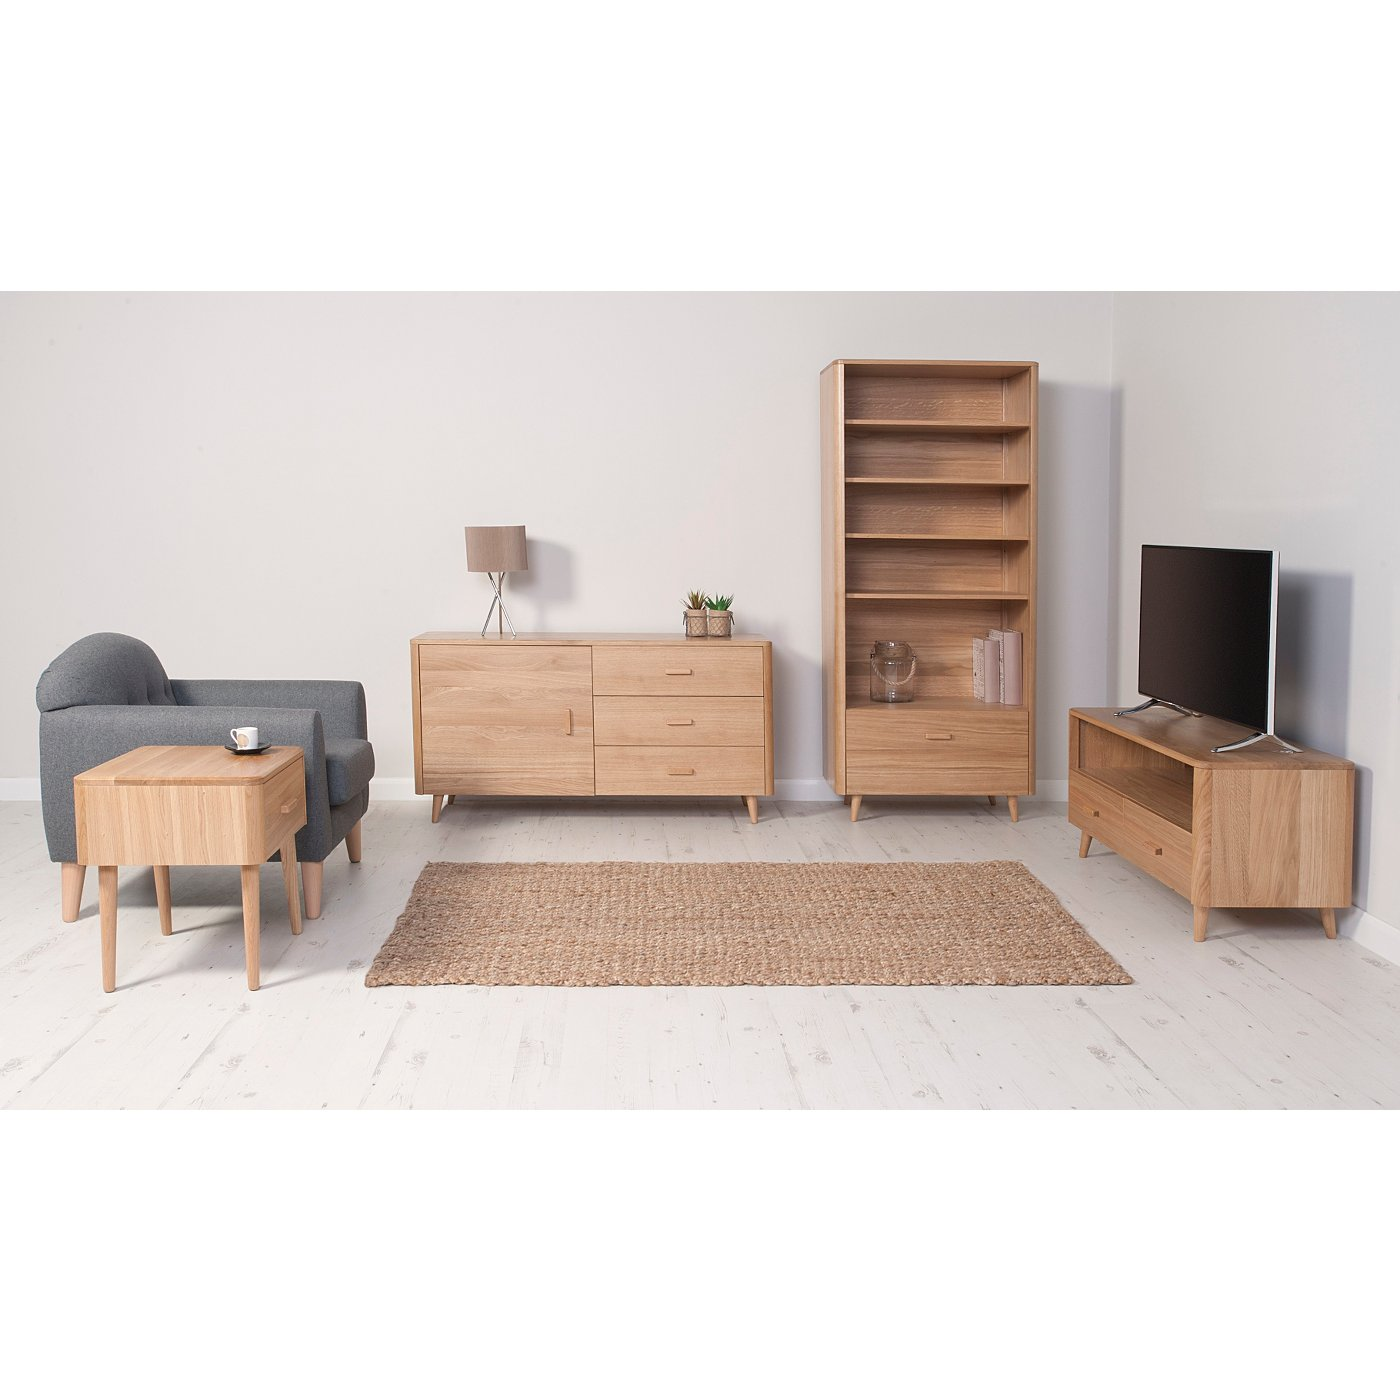 The Range Living Room Furniture George Home Idris Living Room Furniture Range Oak And Oak Veneer